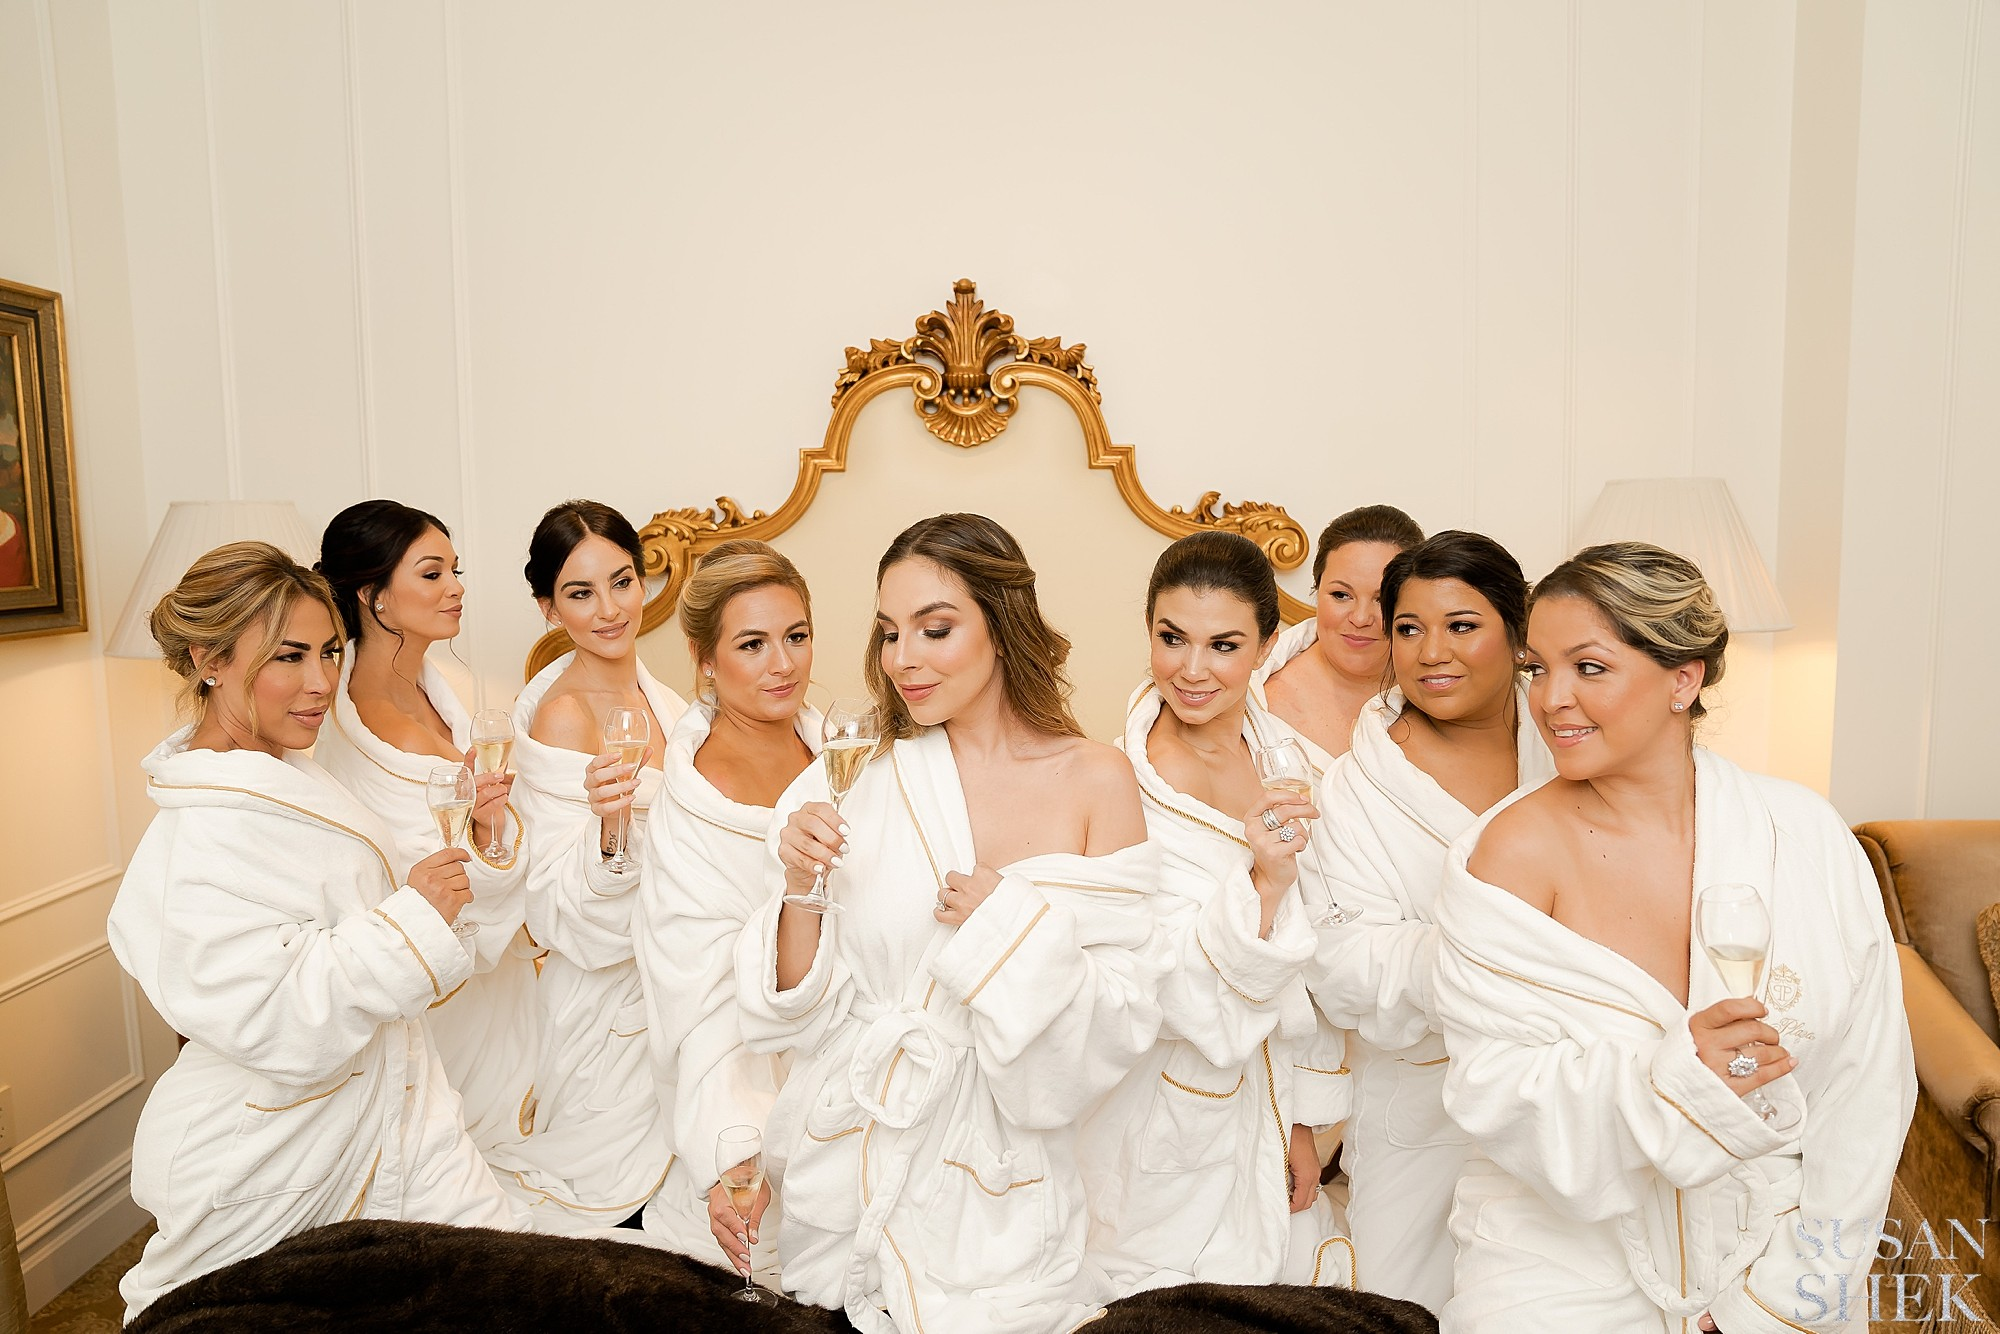 Bride and her bridesmaids at the Plaza Hotel Suite during Getting Ready